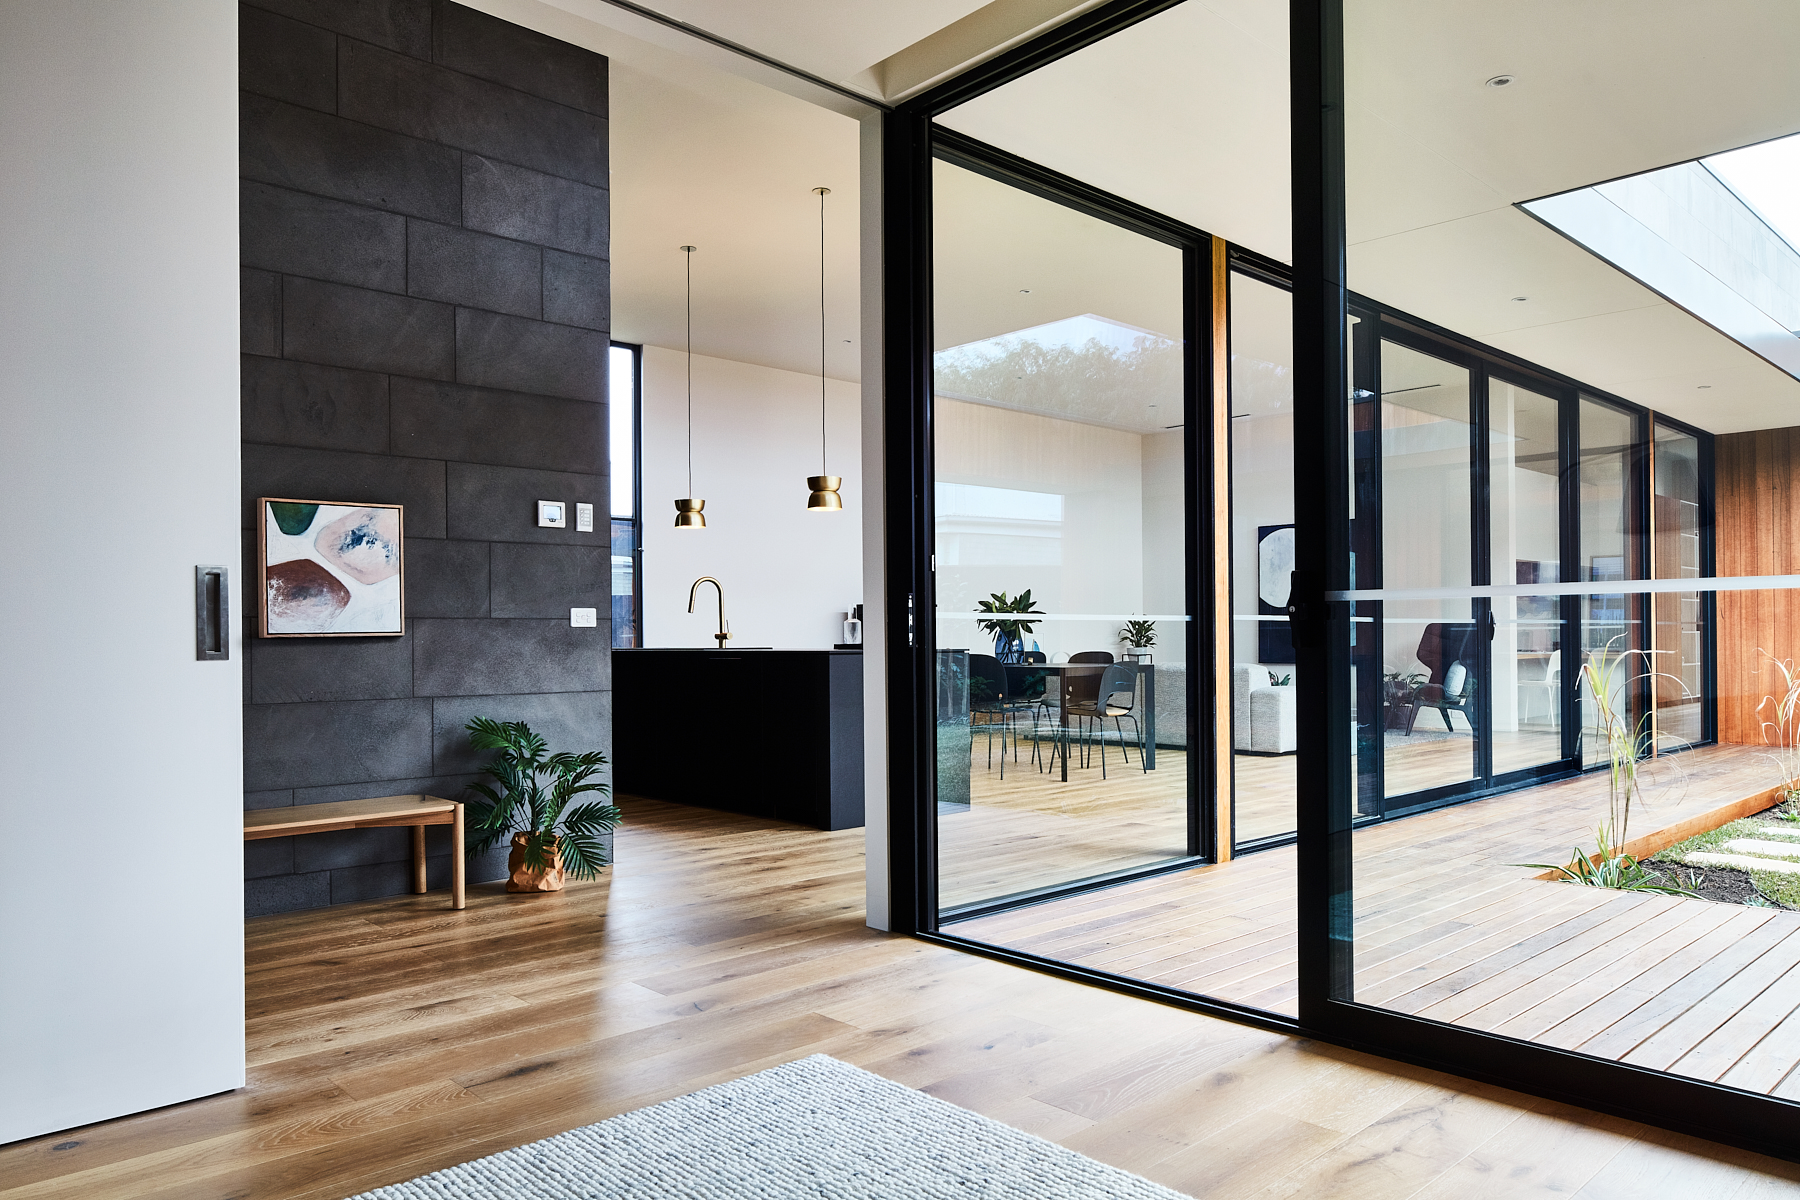 Lifespaces Courtyard House